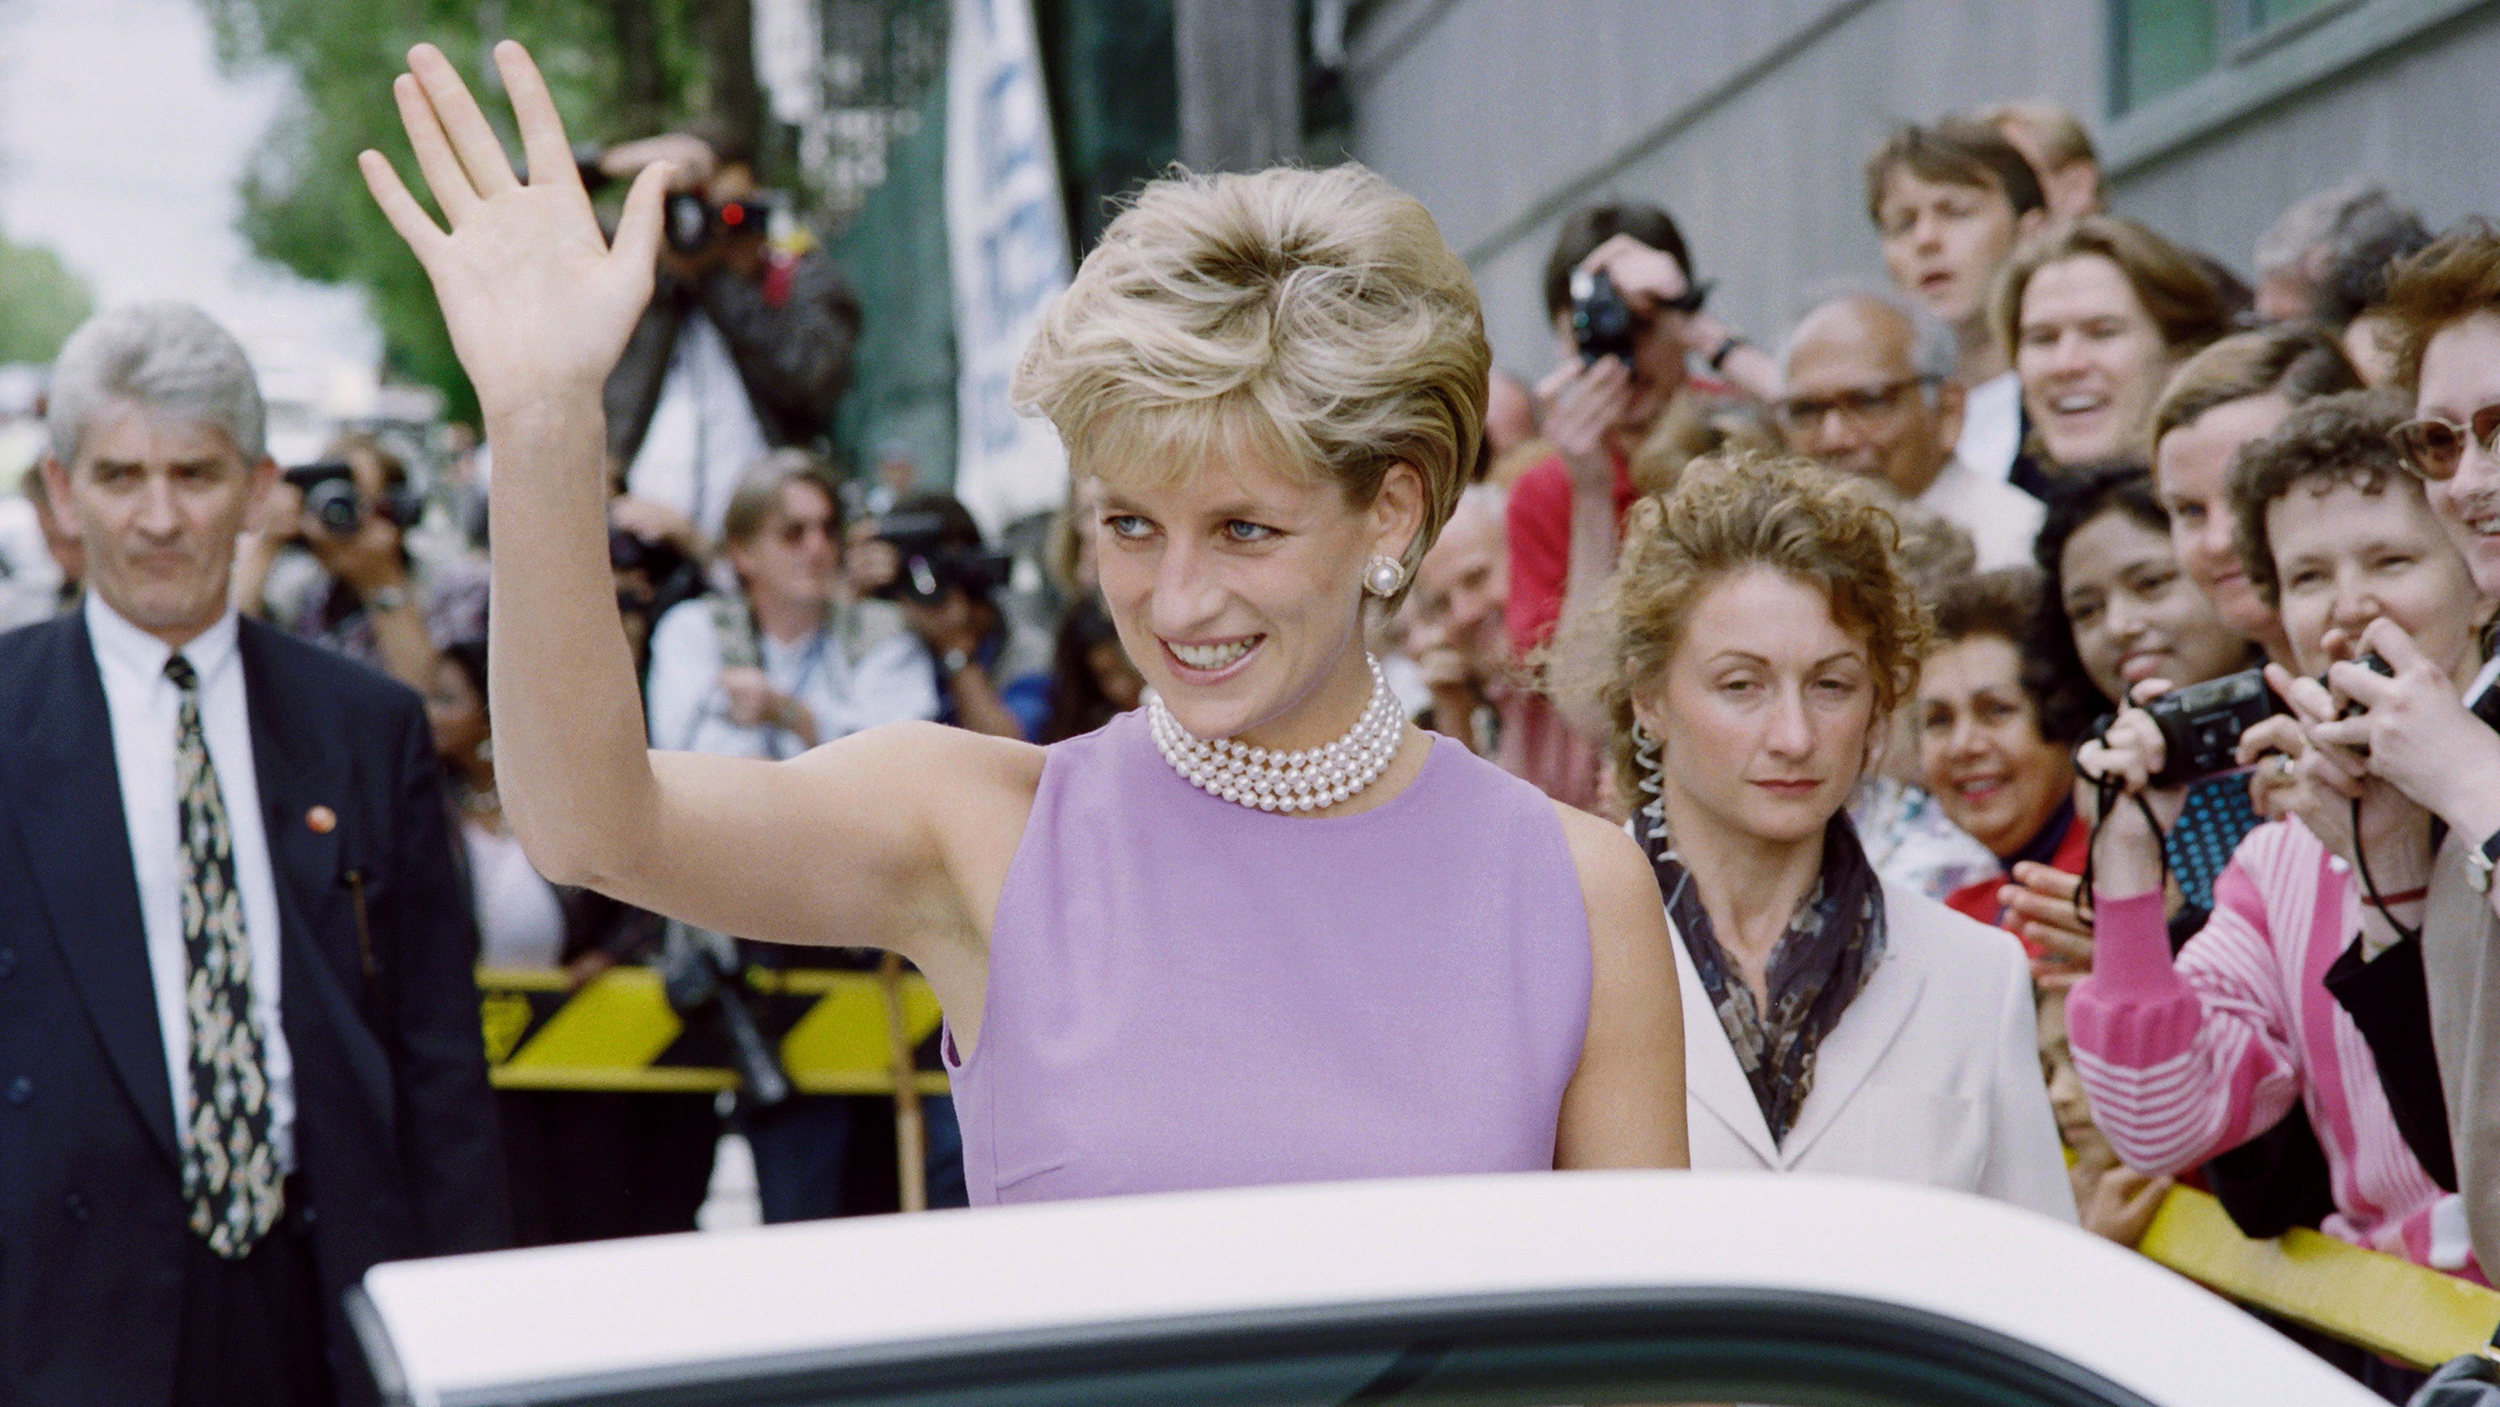 sam mcknight on creating princess diana s iconic haircut https www today com style sam mcknight creating princess diana s iconic haircut t110949